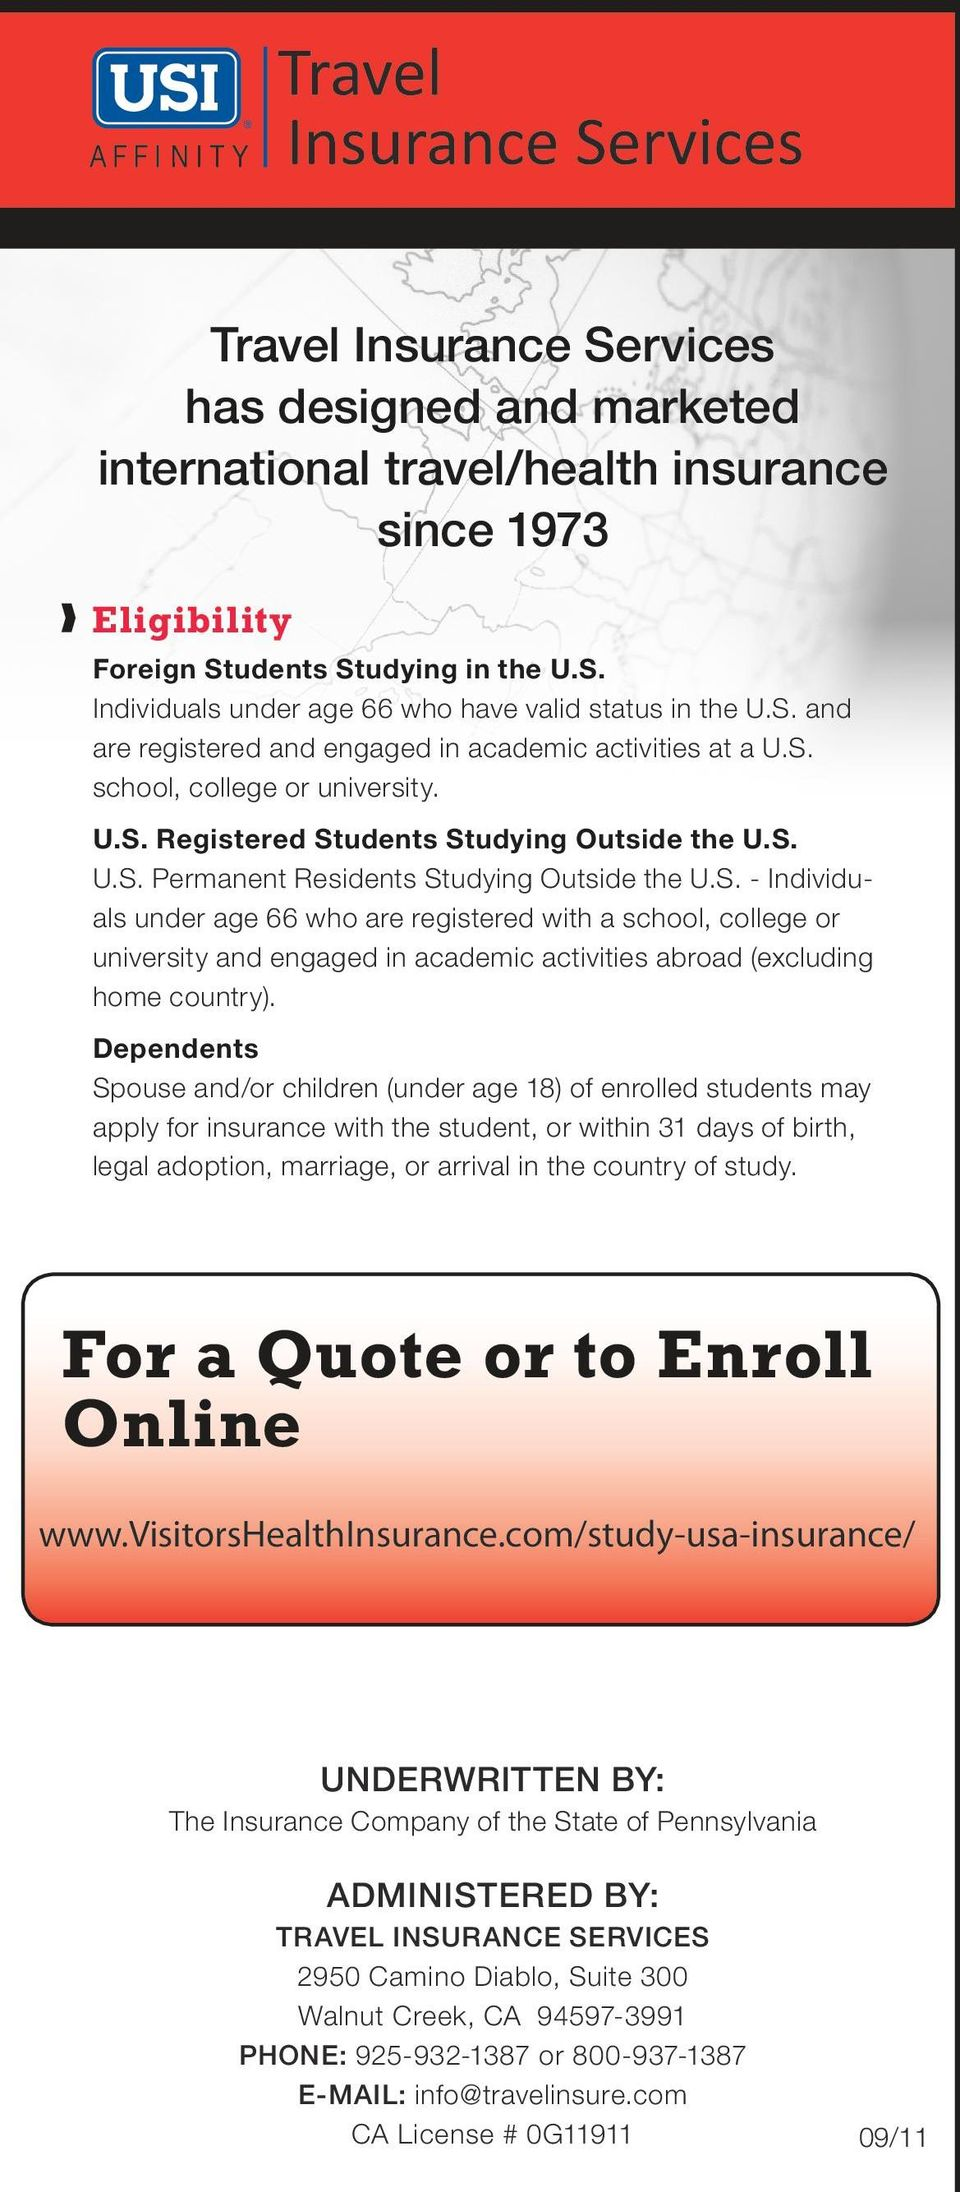 Dependents Spouse and/or children (under age 18) of enrolled students may apply for insurance with the student, or within 31 days of birth, legal adoption, marriage, or arrival in the country of